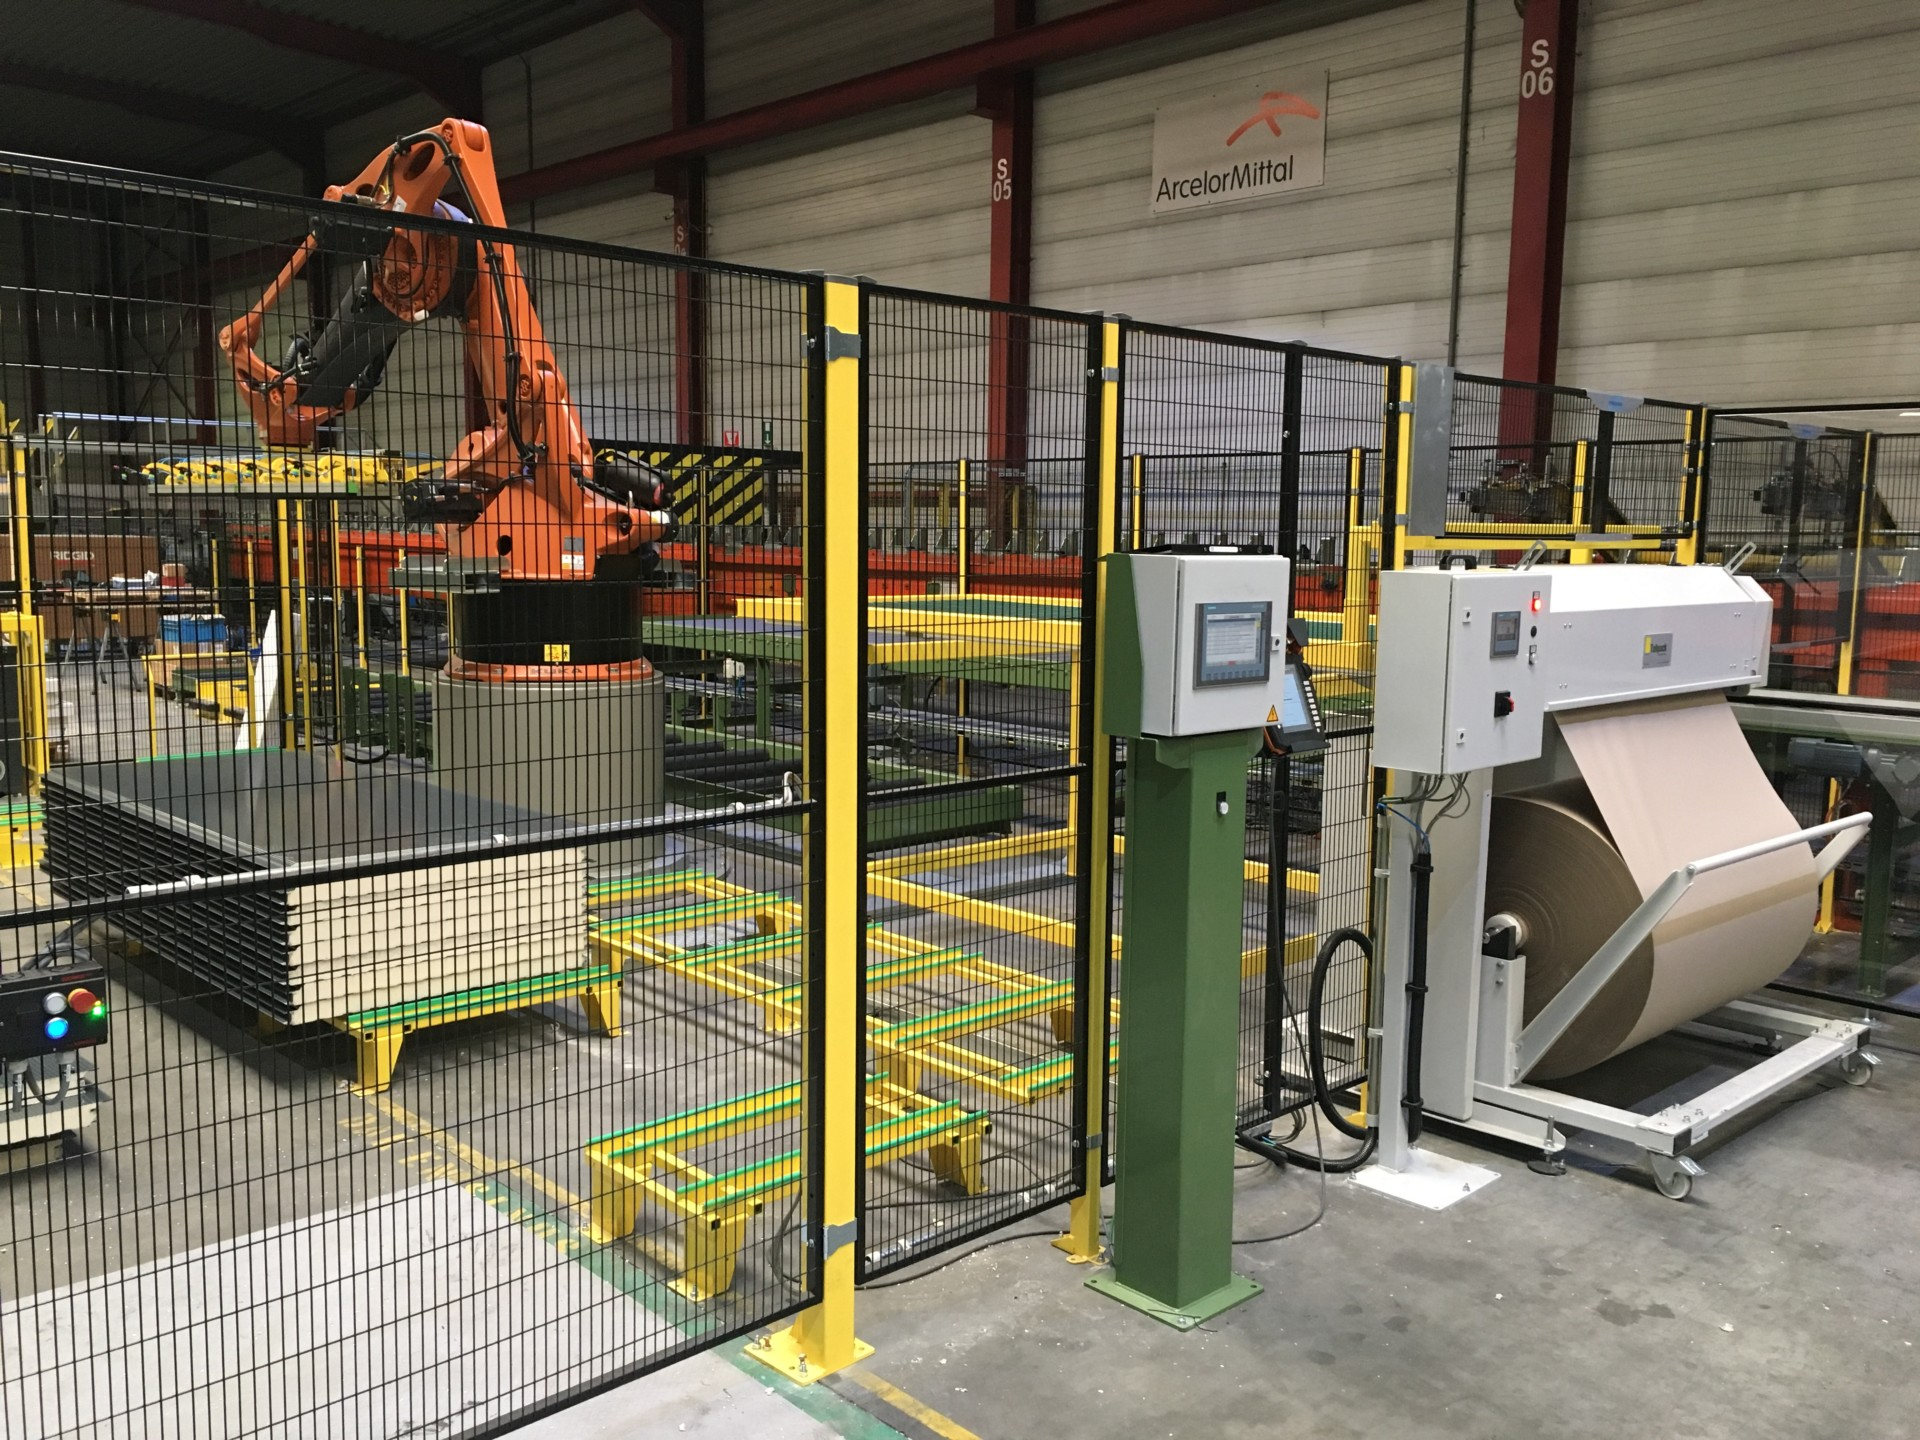 Tallpack sells first 'Automatic Sheet dispenser' in Belgium and makes process more sustainable